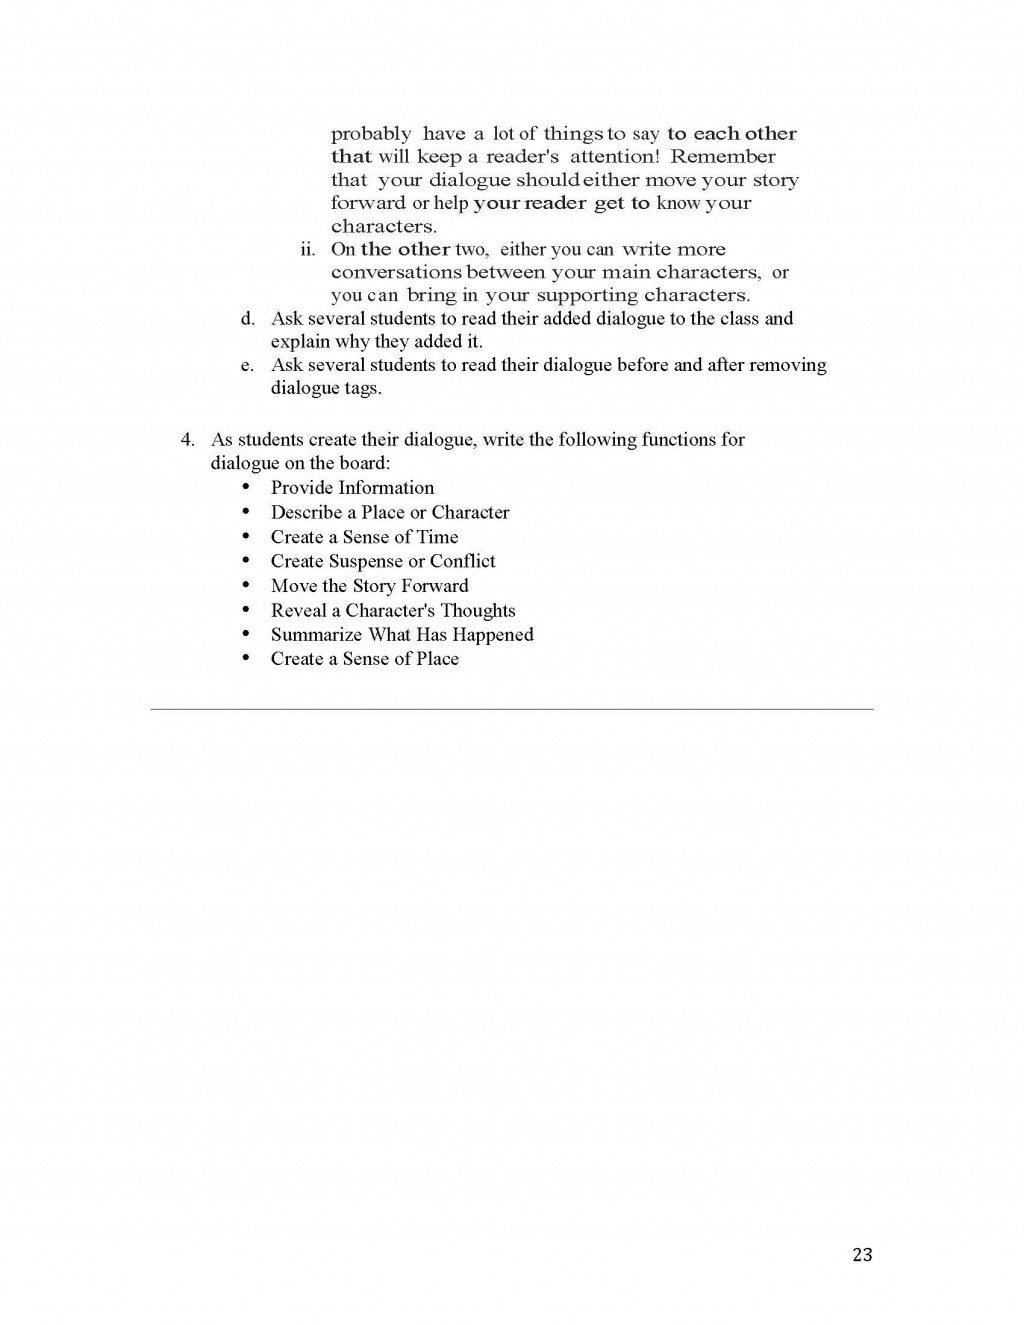 014 Literacy Narrative Essay Example Unit 1 Instructor Copy Page 23 Phenomenal Personal Examples Sample Digital Large